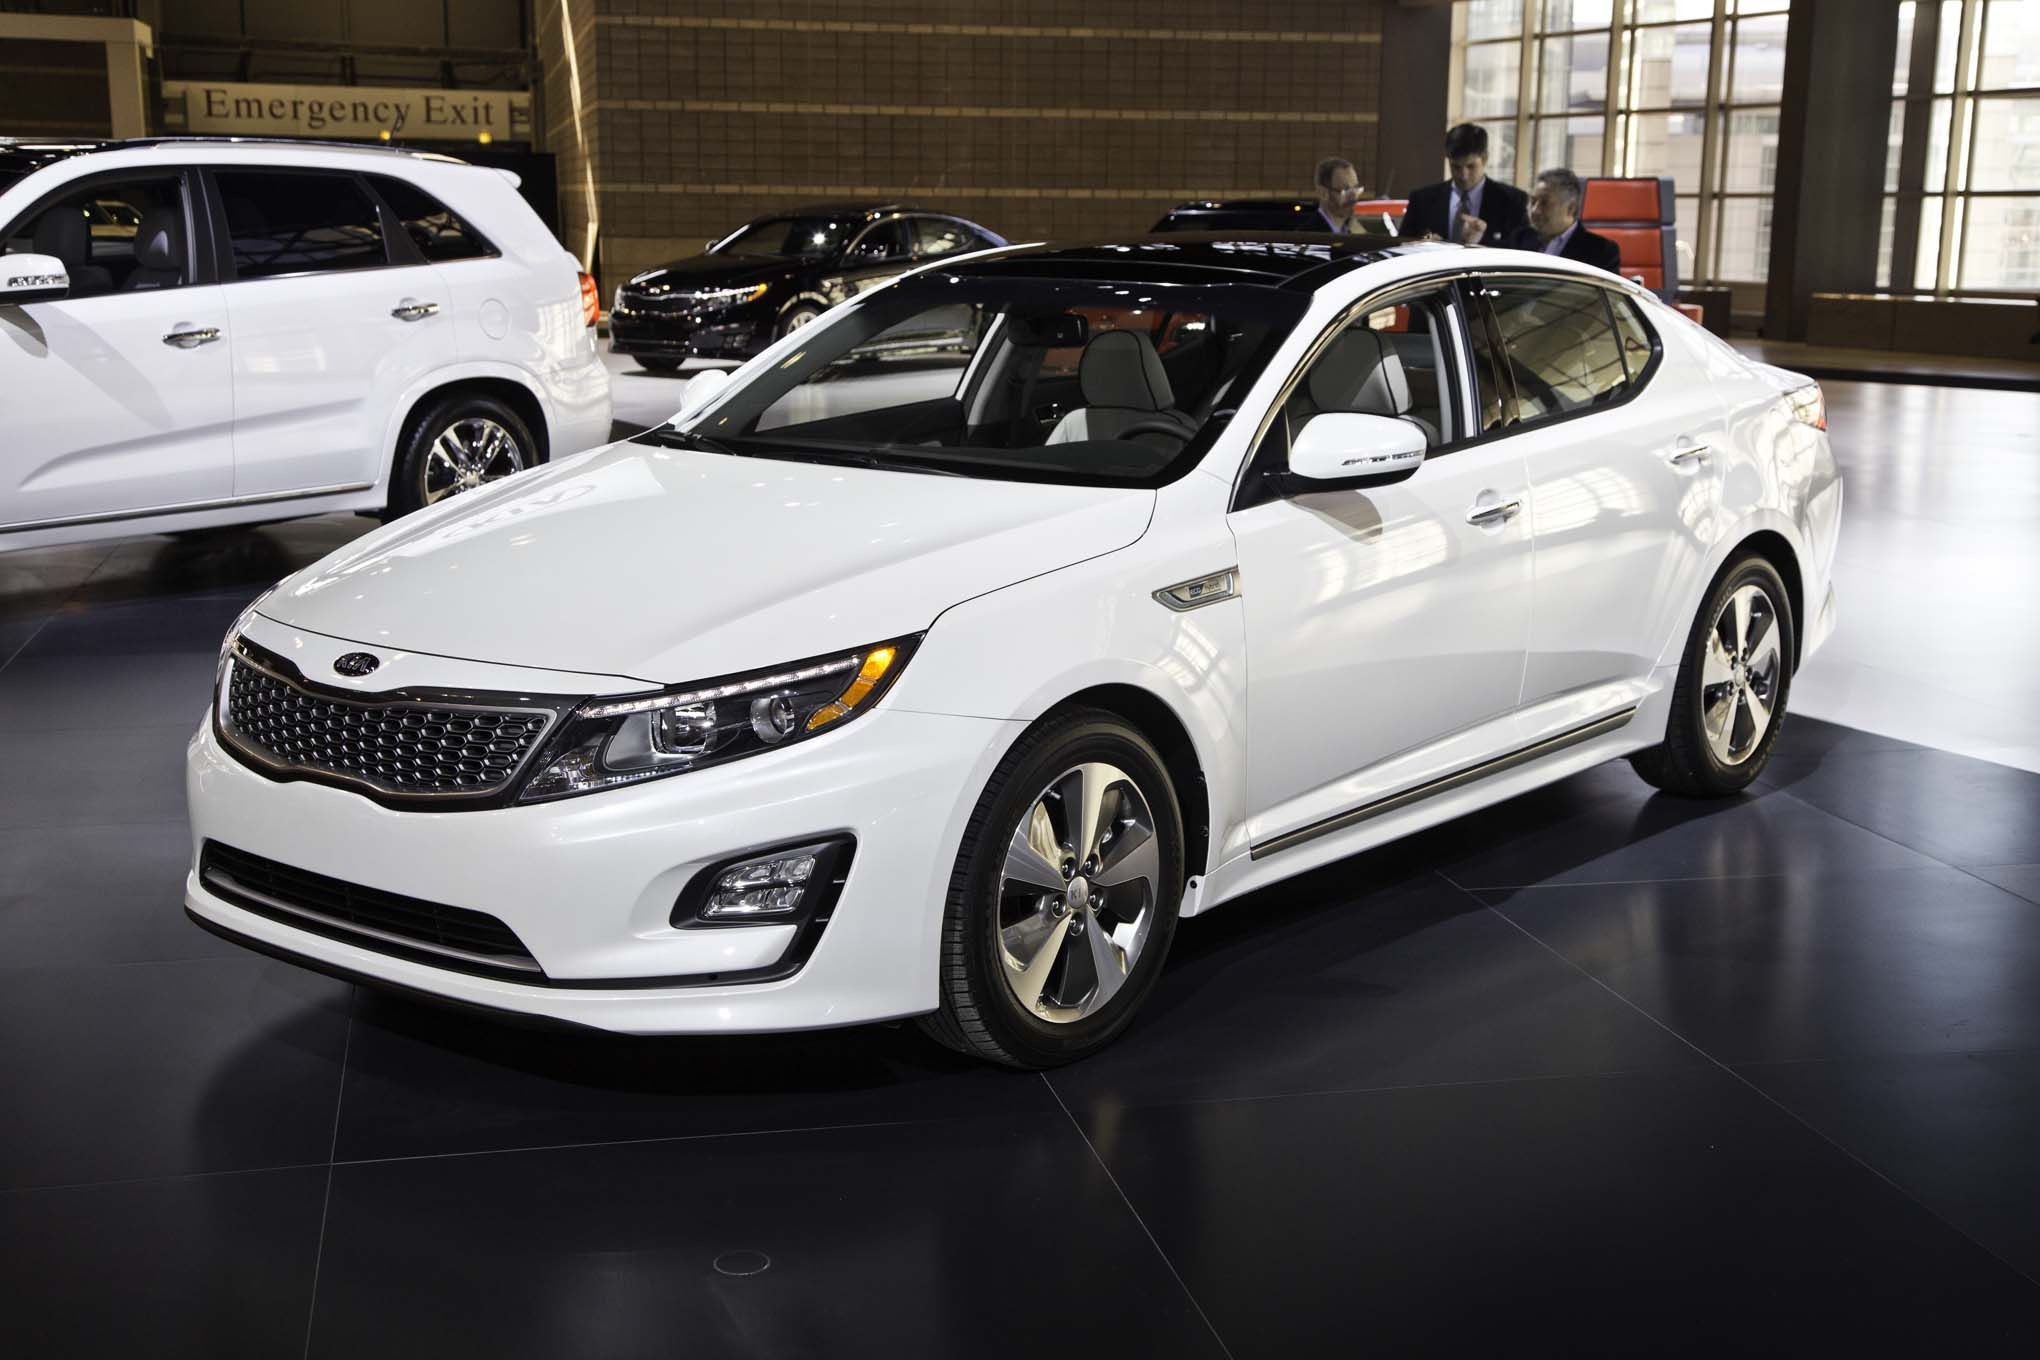 2015 kia optima sx limited 2015 kia optima pinterest kia optima cars and dream cars. Black Bedroom Furniture Sets. Home Design Ideas